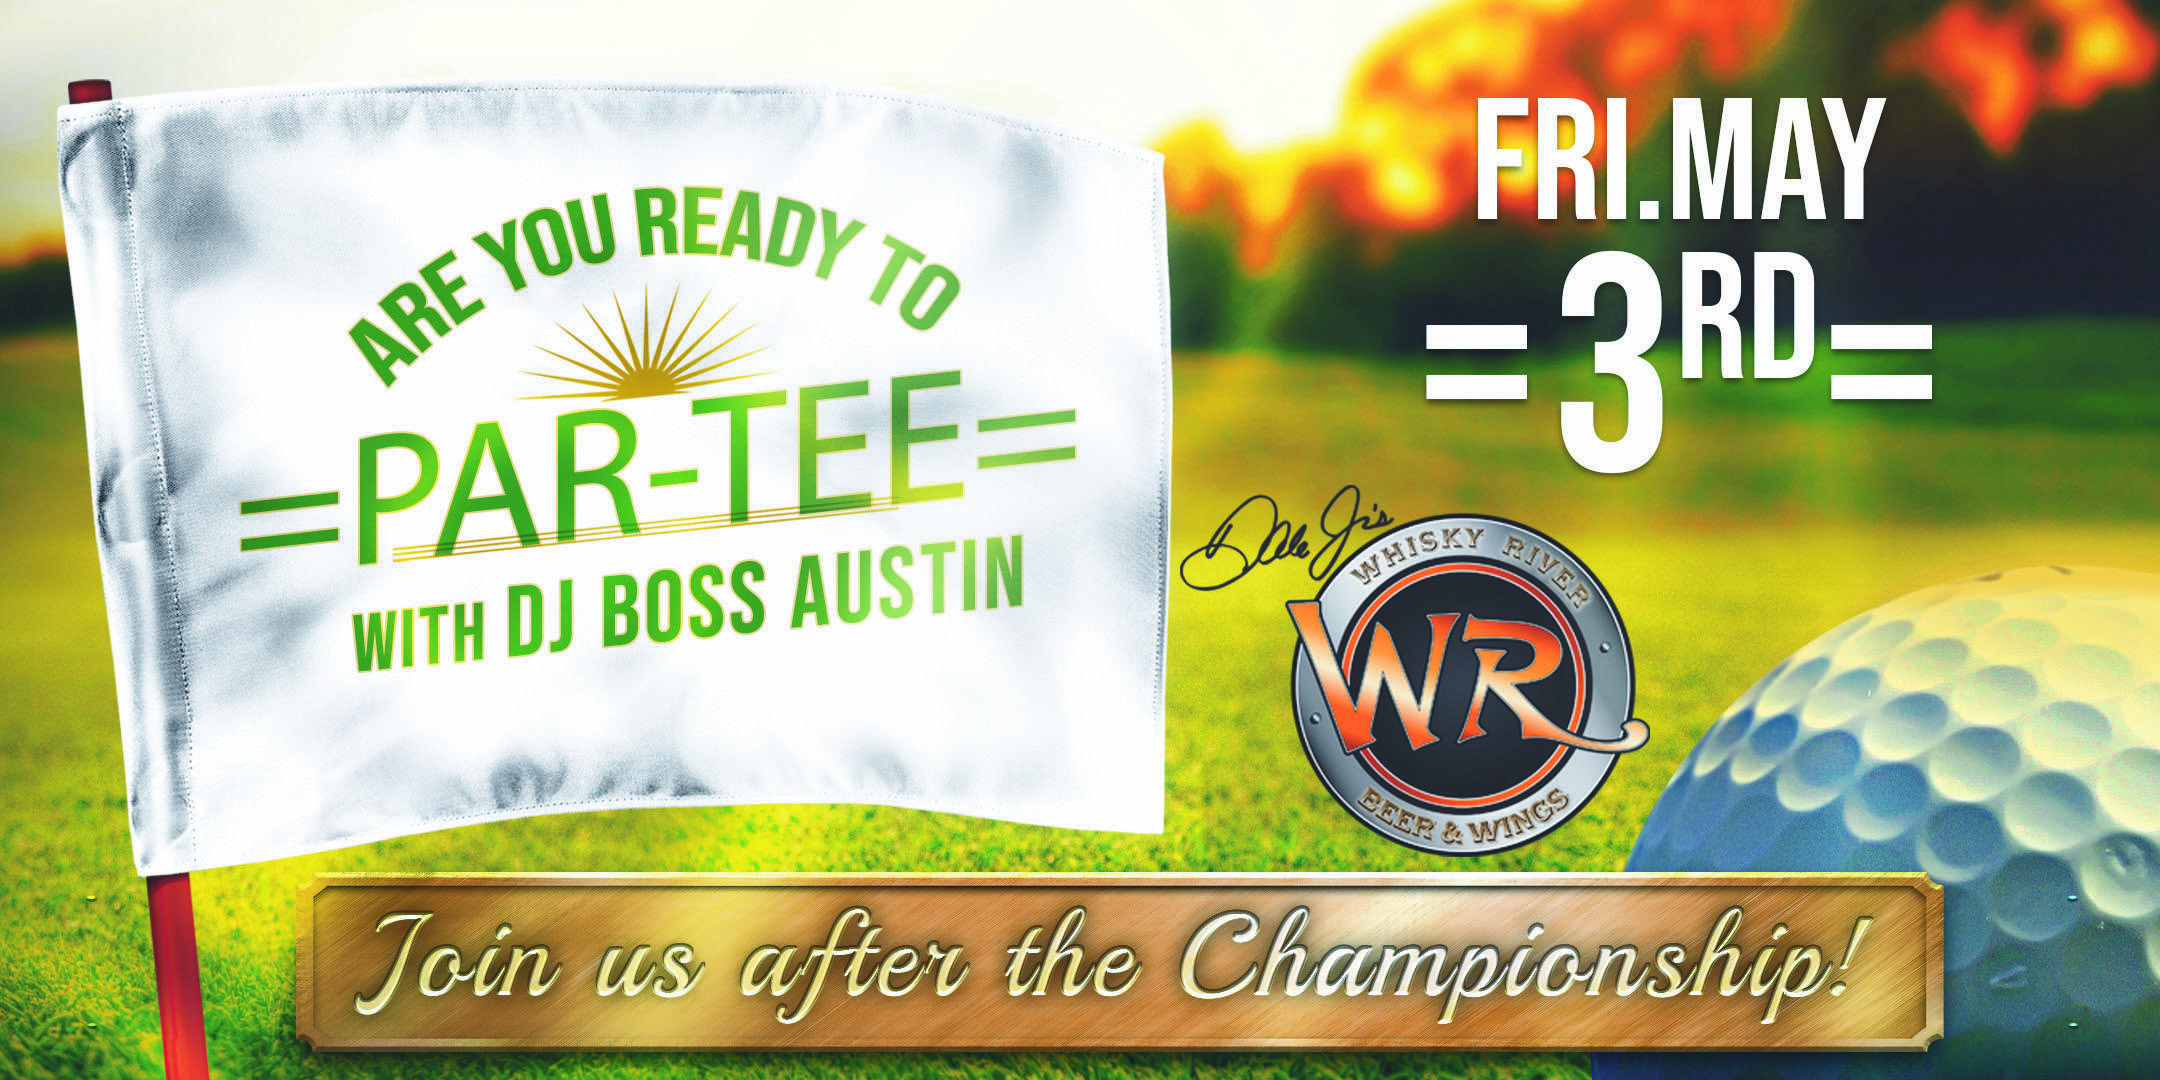 Are You Ready To Par-Tee?